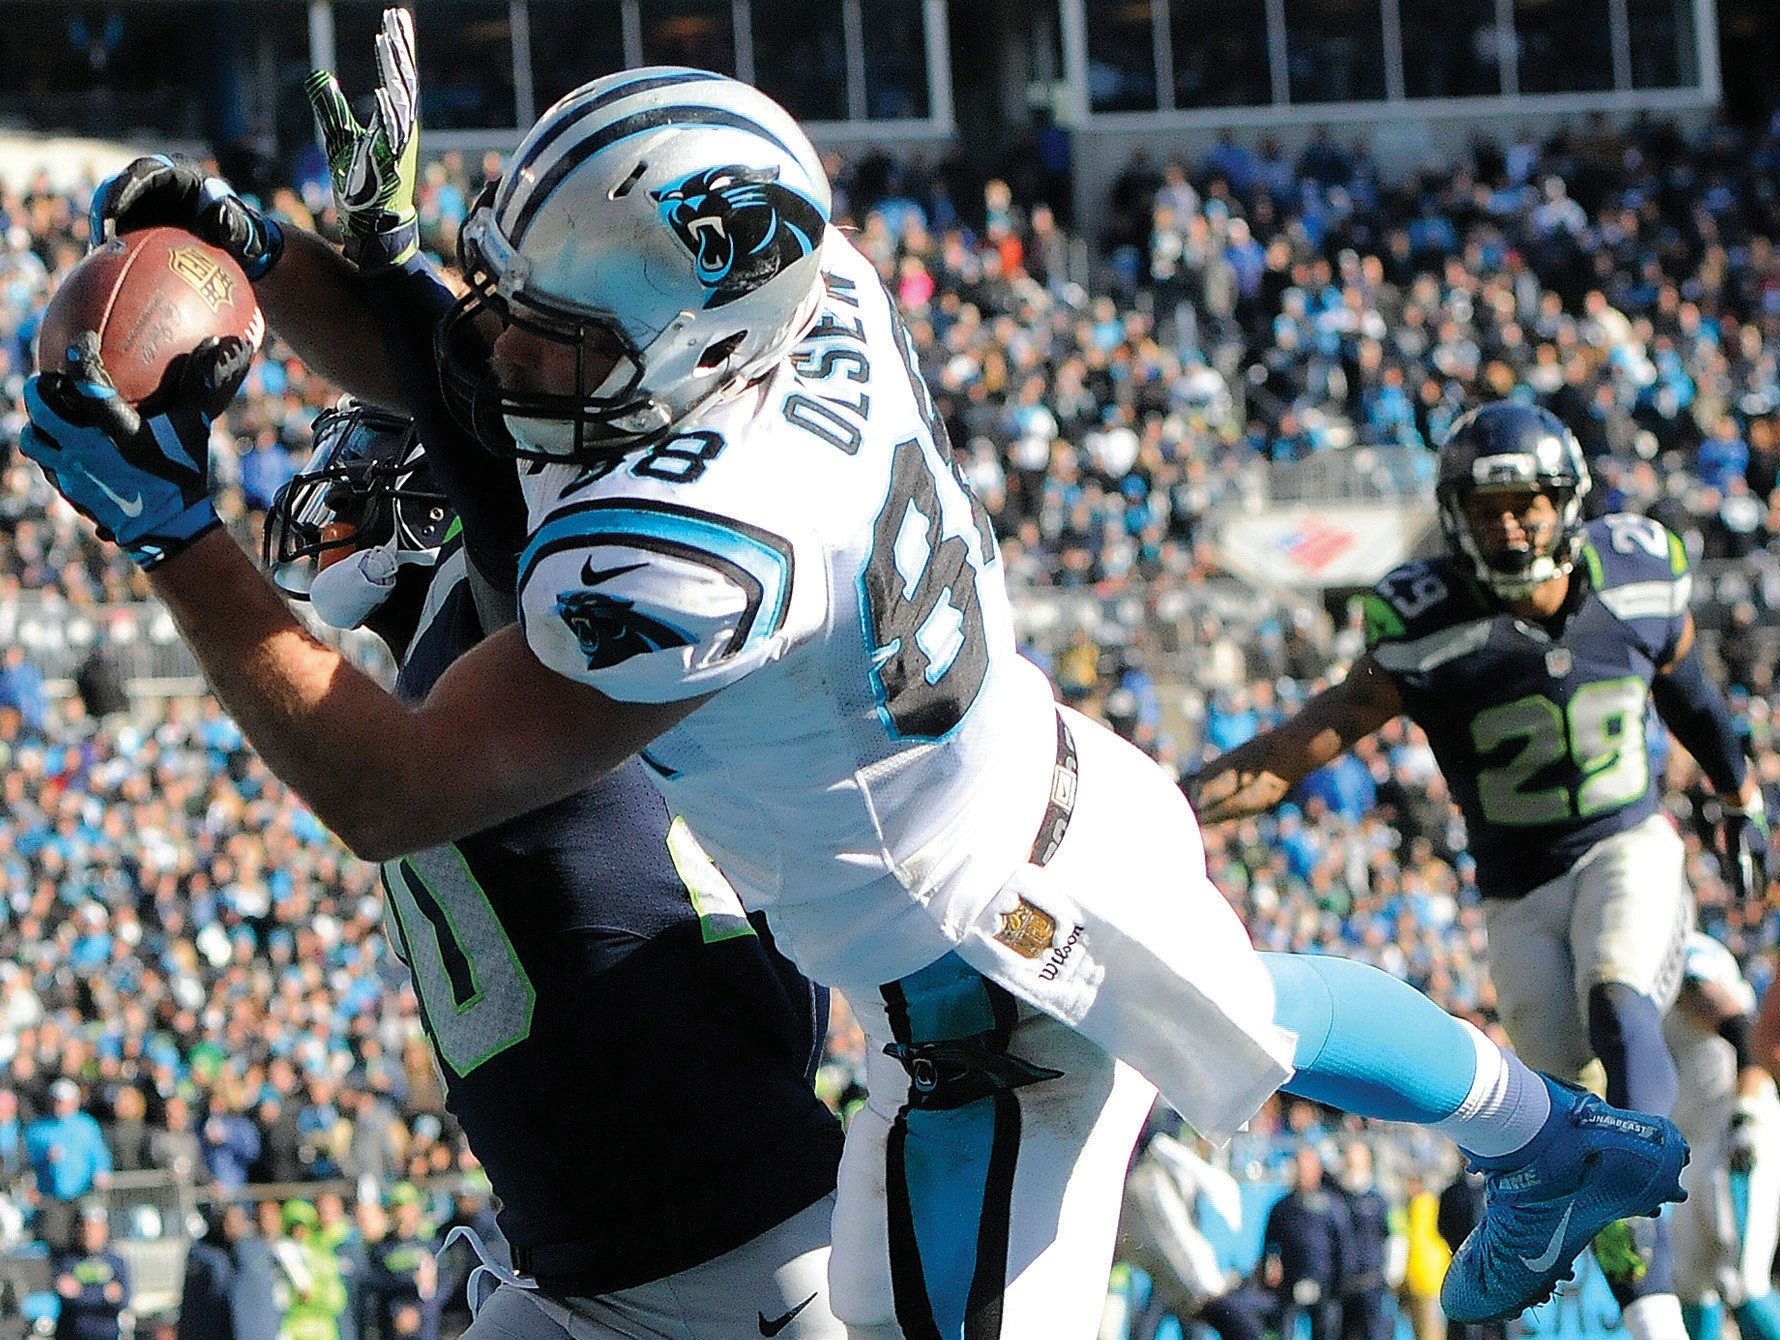 Carolina Panthers tight end Greg Olsen (88) makes a touchdown catch against Seattle Seahawks cornerback Jeremy Lane (20) during the first half of an NFL divisional playoff football game on Sunday in Charlotte, N.C.